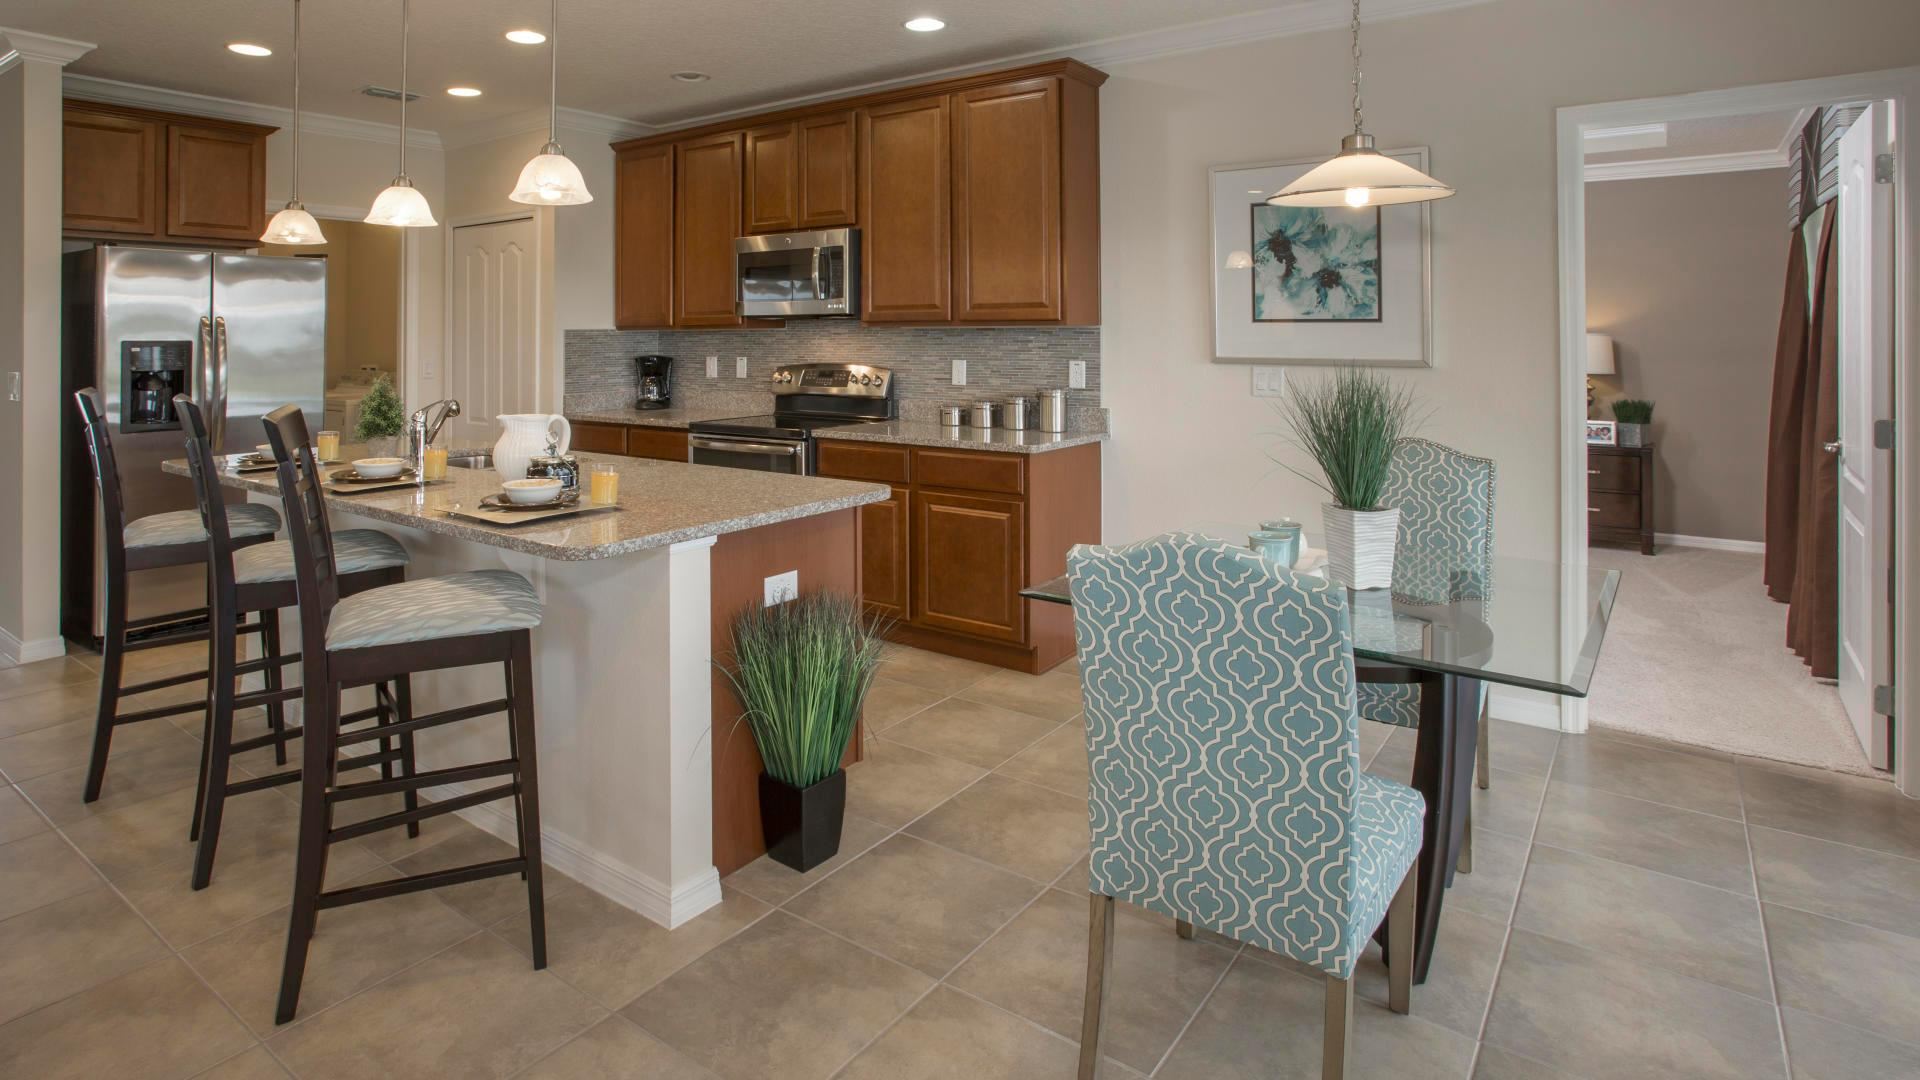 Kitchen featured in the Fairfield By Maronda Homes in Indian River County, FL